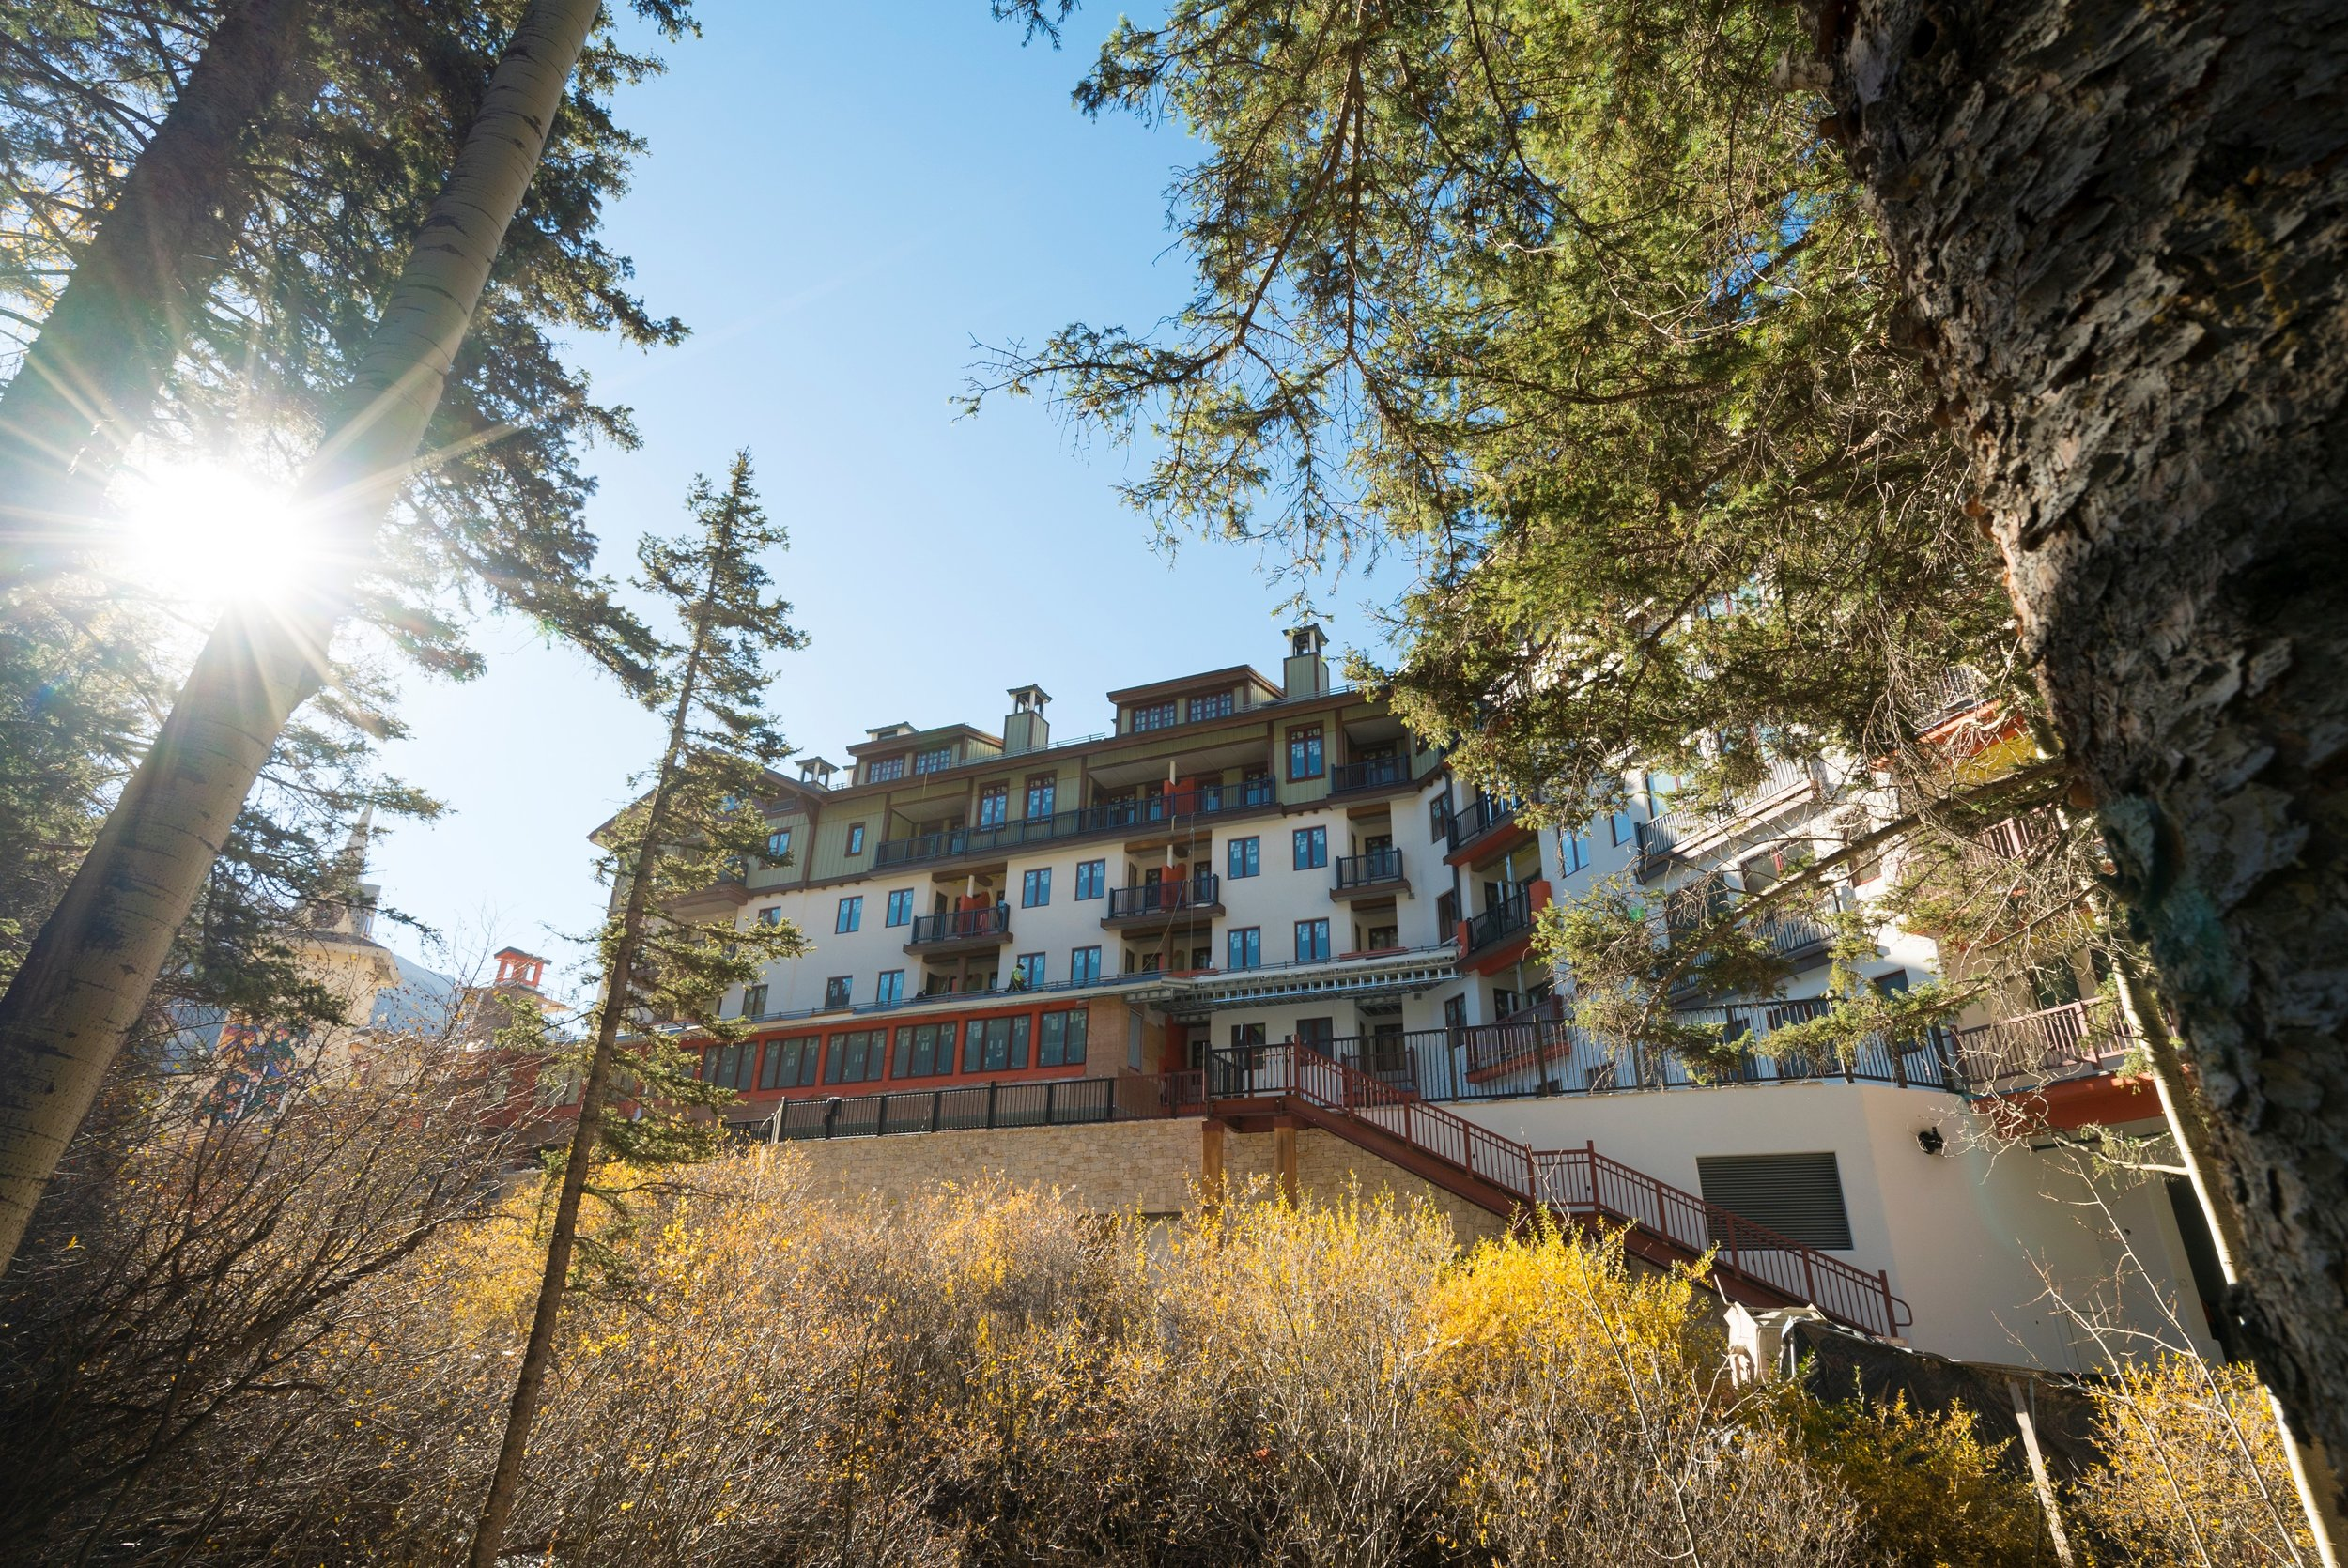 The Blake at Taos Ski Valley is the long-awaited centerpiece of the resort's redeveloped village.